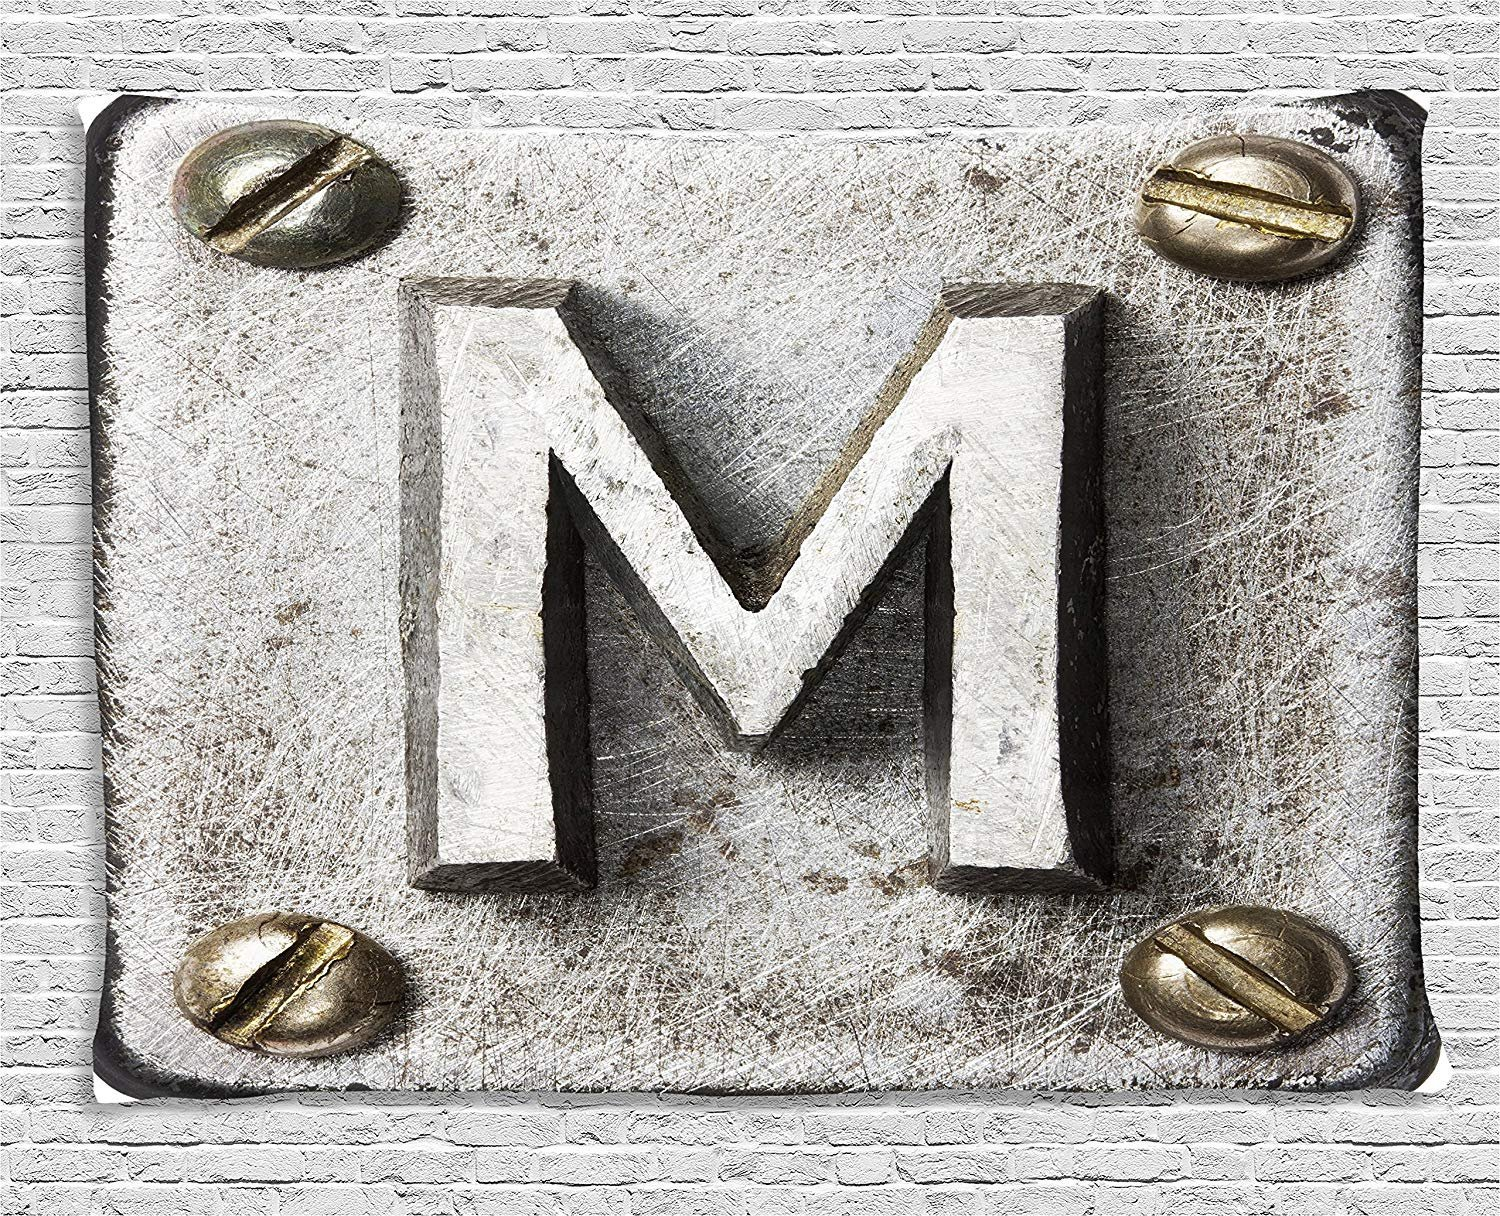 XHFITCLtd Letter M Tapestry, Zinc Iron Steel Alphabet Typeset with Grunge Scratched Texture Industrial Image, Wall Hanging for Bedroom Living Room Dorm, 80 W X 60 L Inches, Silver Gold